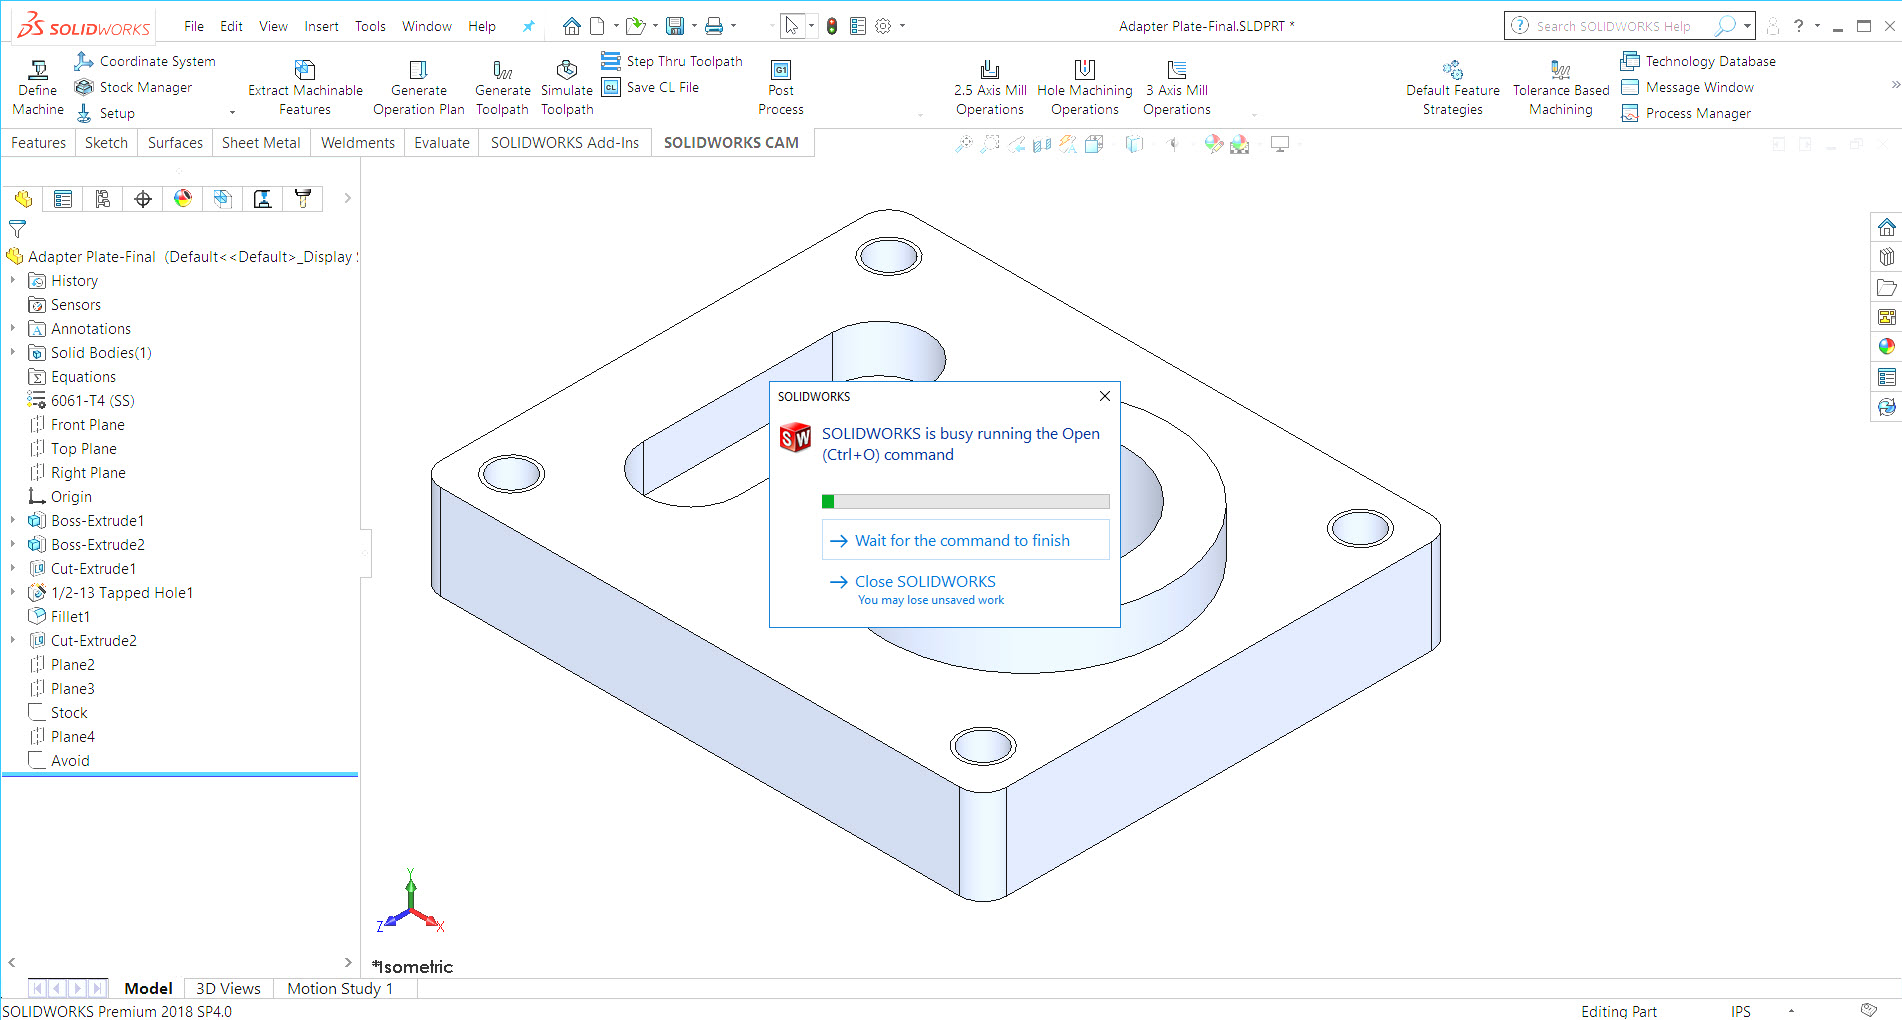 How to Enable SOLIDWORKS Status Feedback (in 2018 SP3 and above)